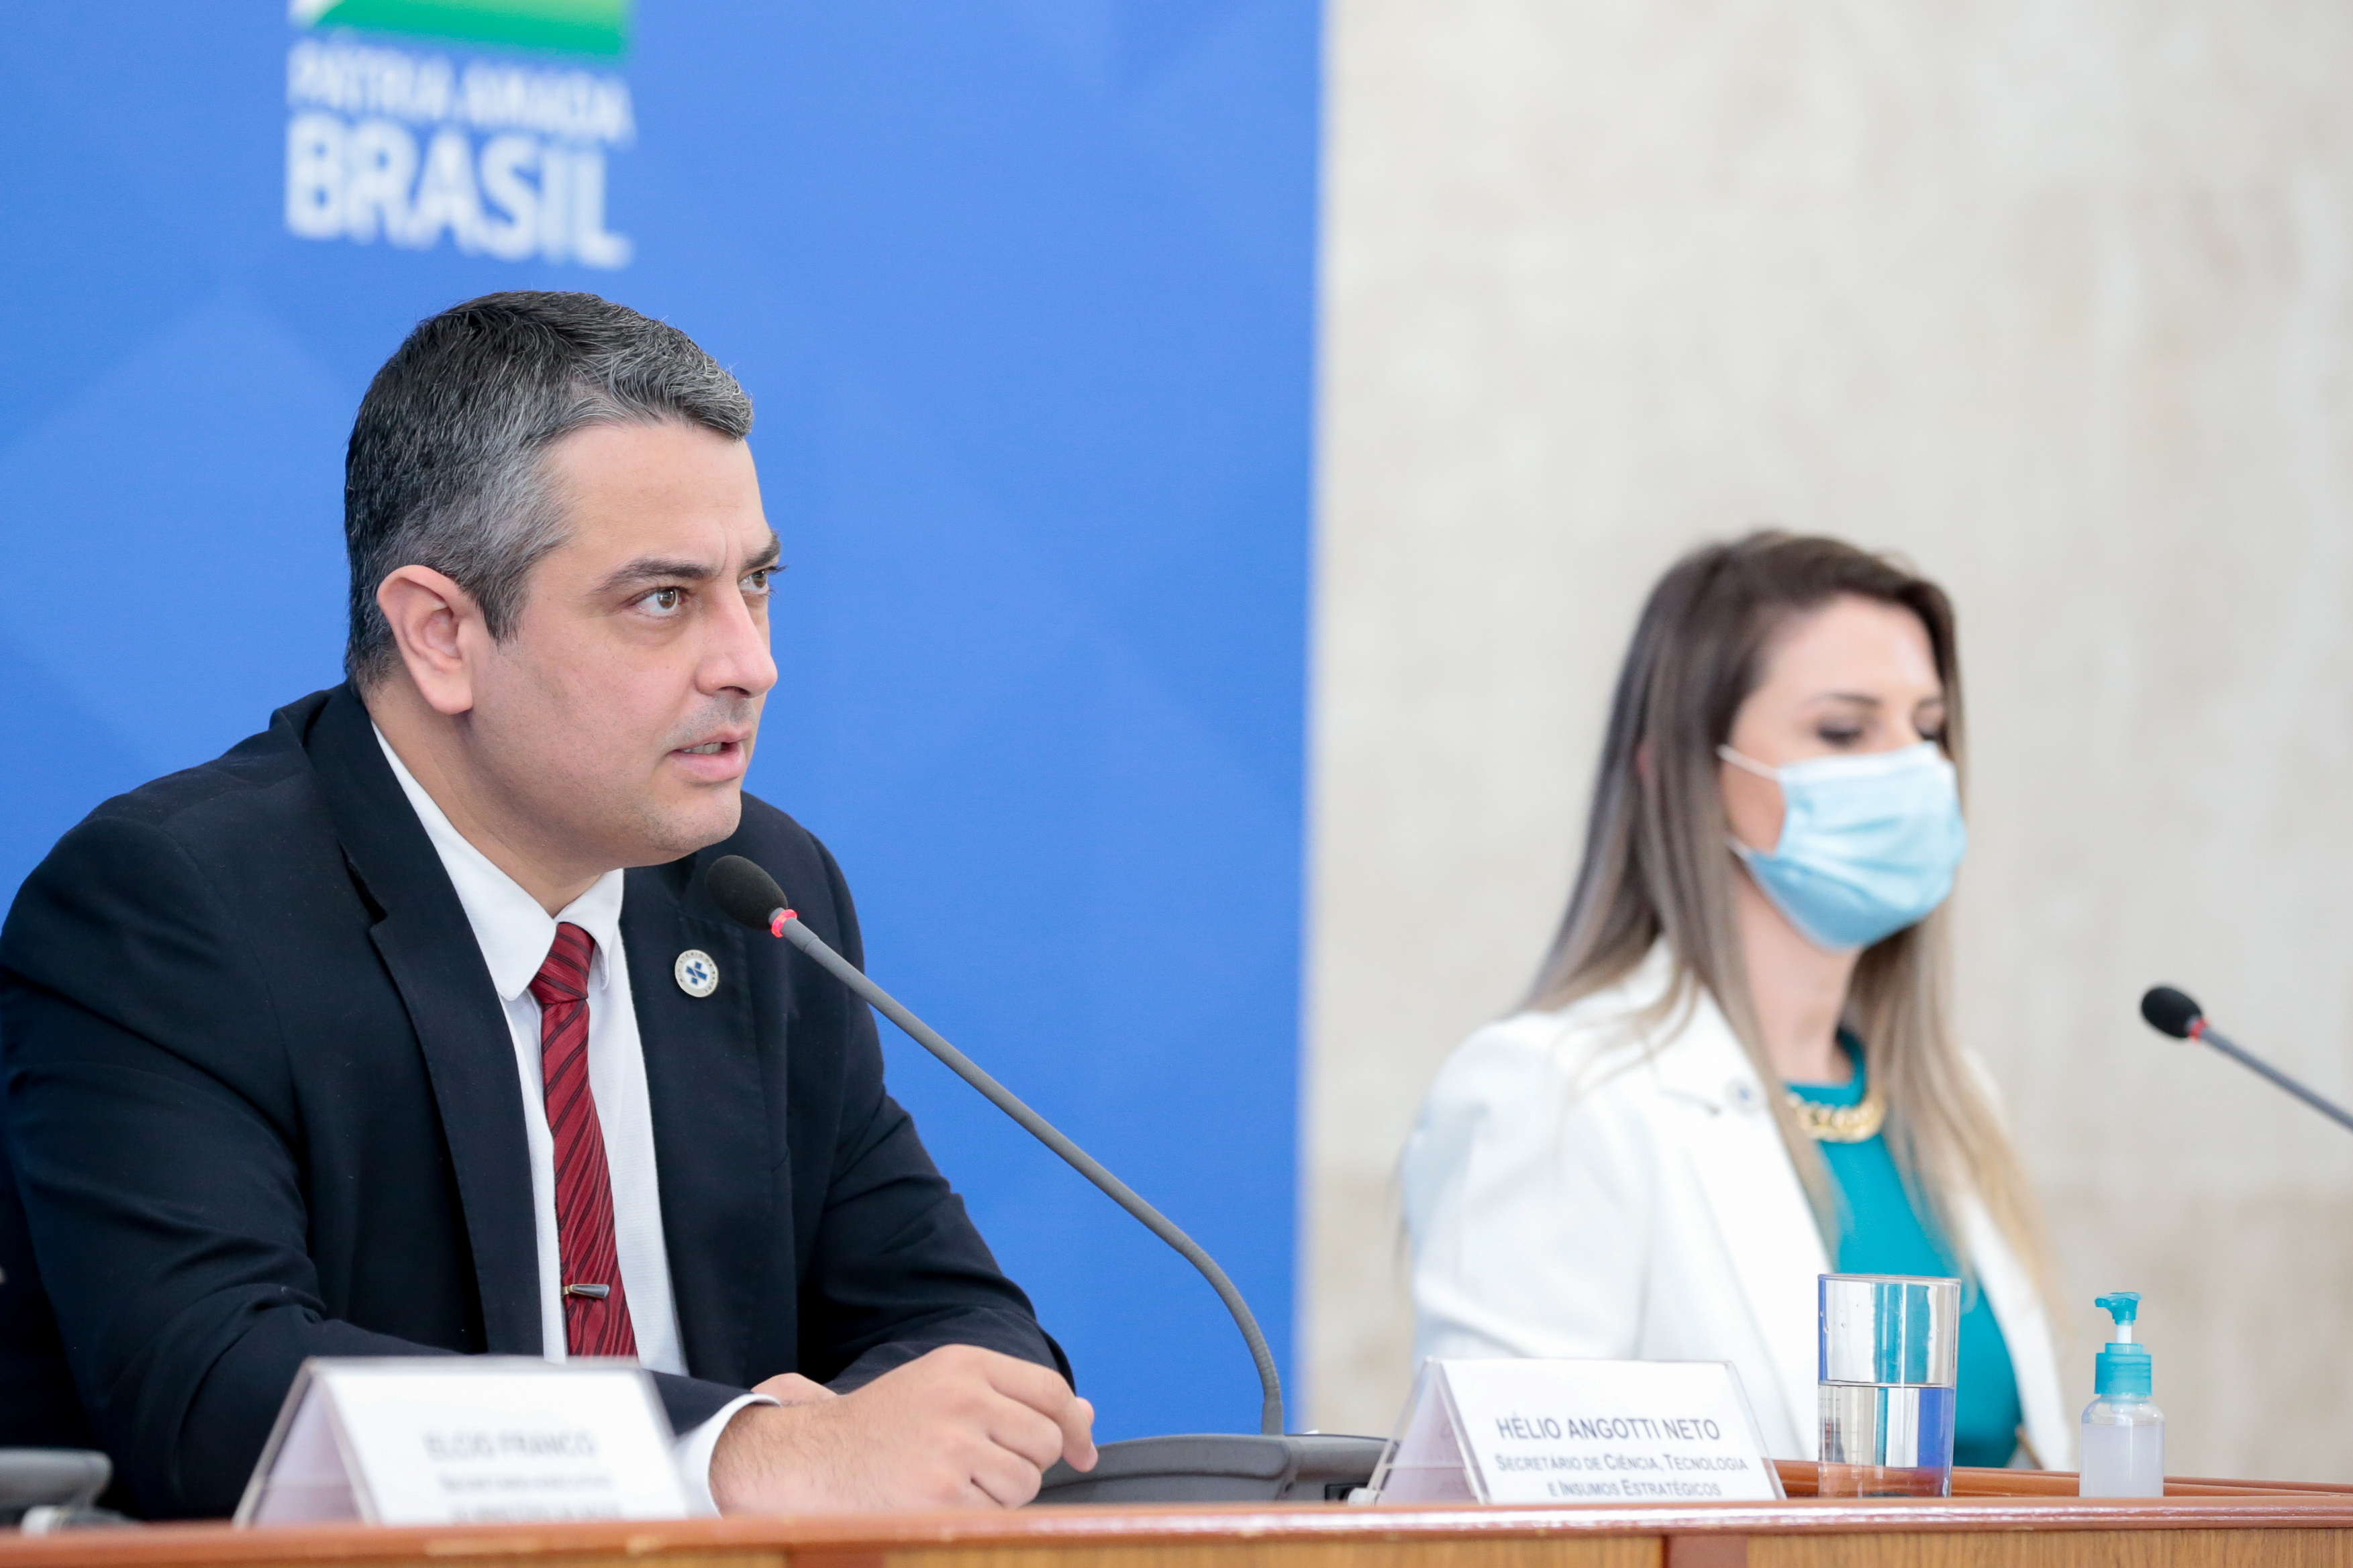 Helio Angotti Neto, chief of the Health Ministry's Science, Technology, Innovation and Strategic Inputs department attends a news conference in Brasilia, Brazil June 27, 2020. Carolina Antunes/Brazilian Presidency via REUTERS